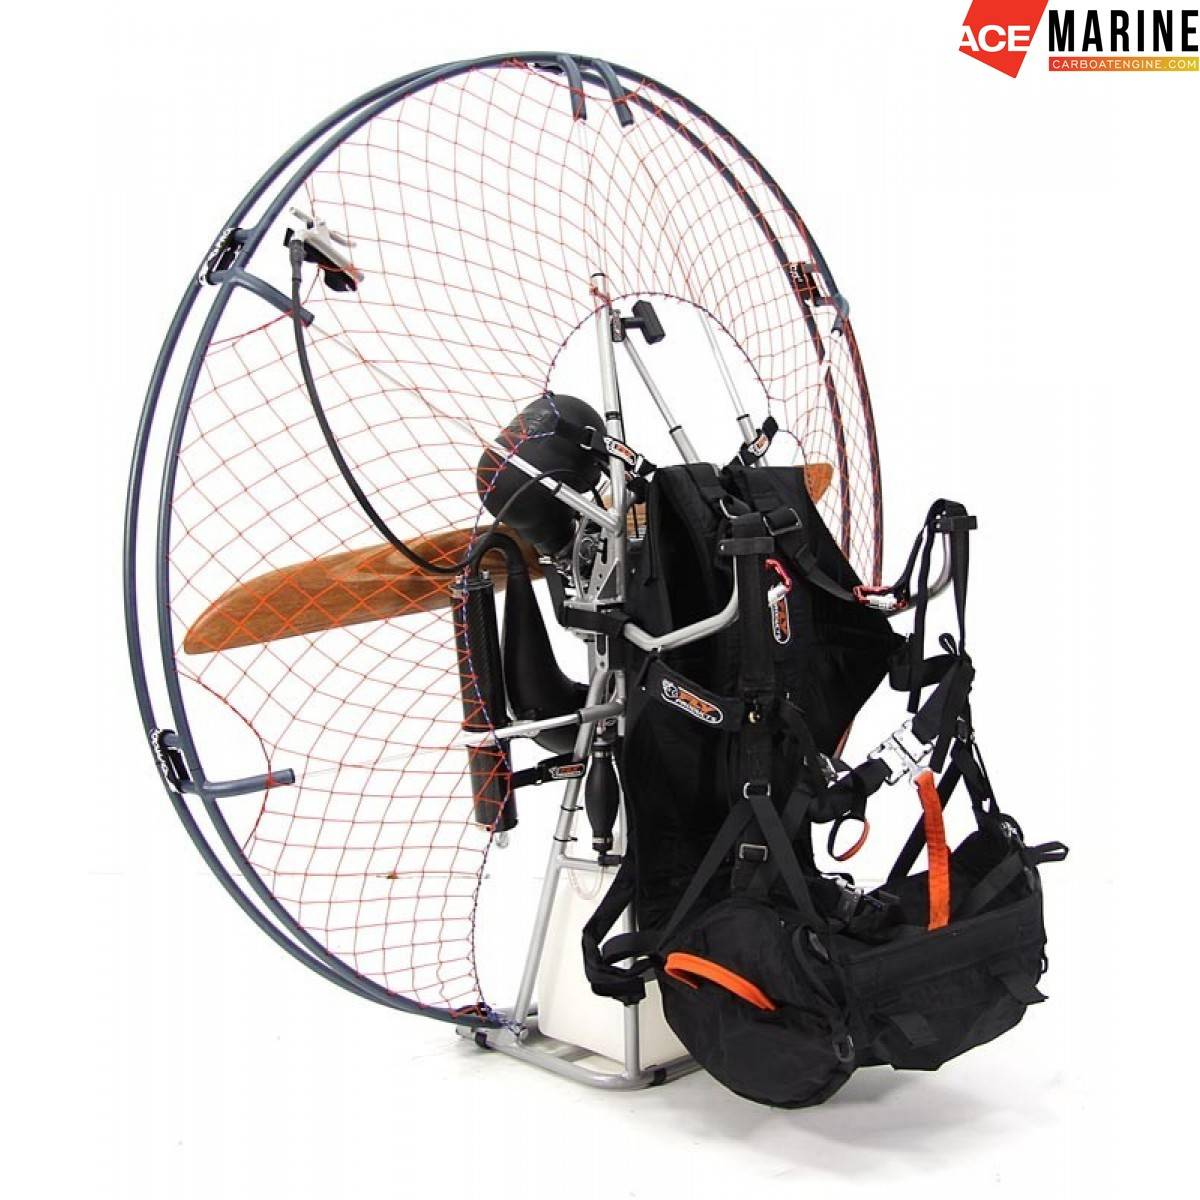 FLY PRODUCTS THRUST PARAMOTOR